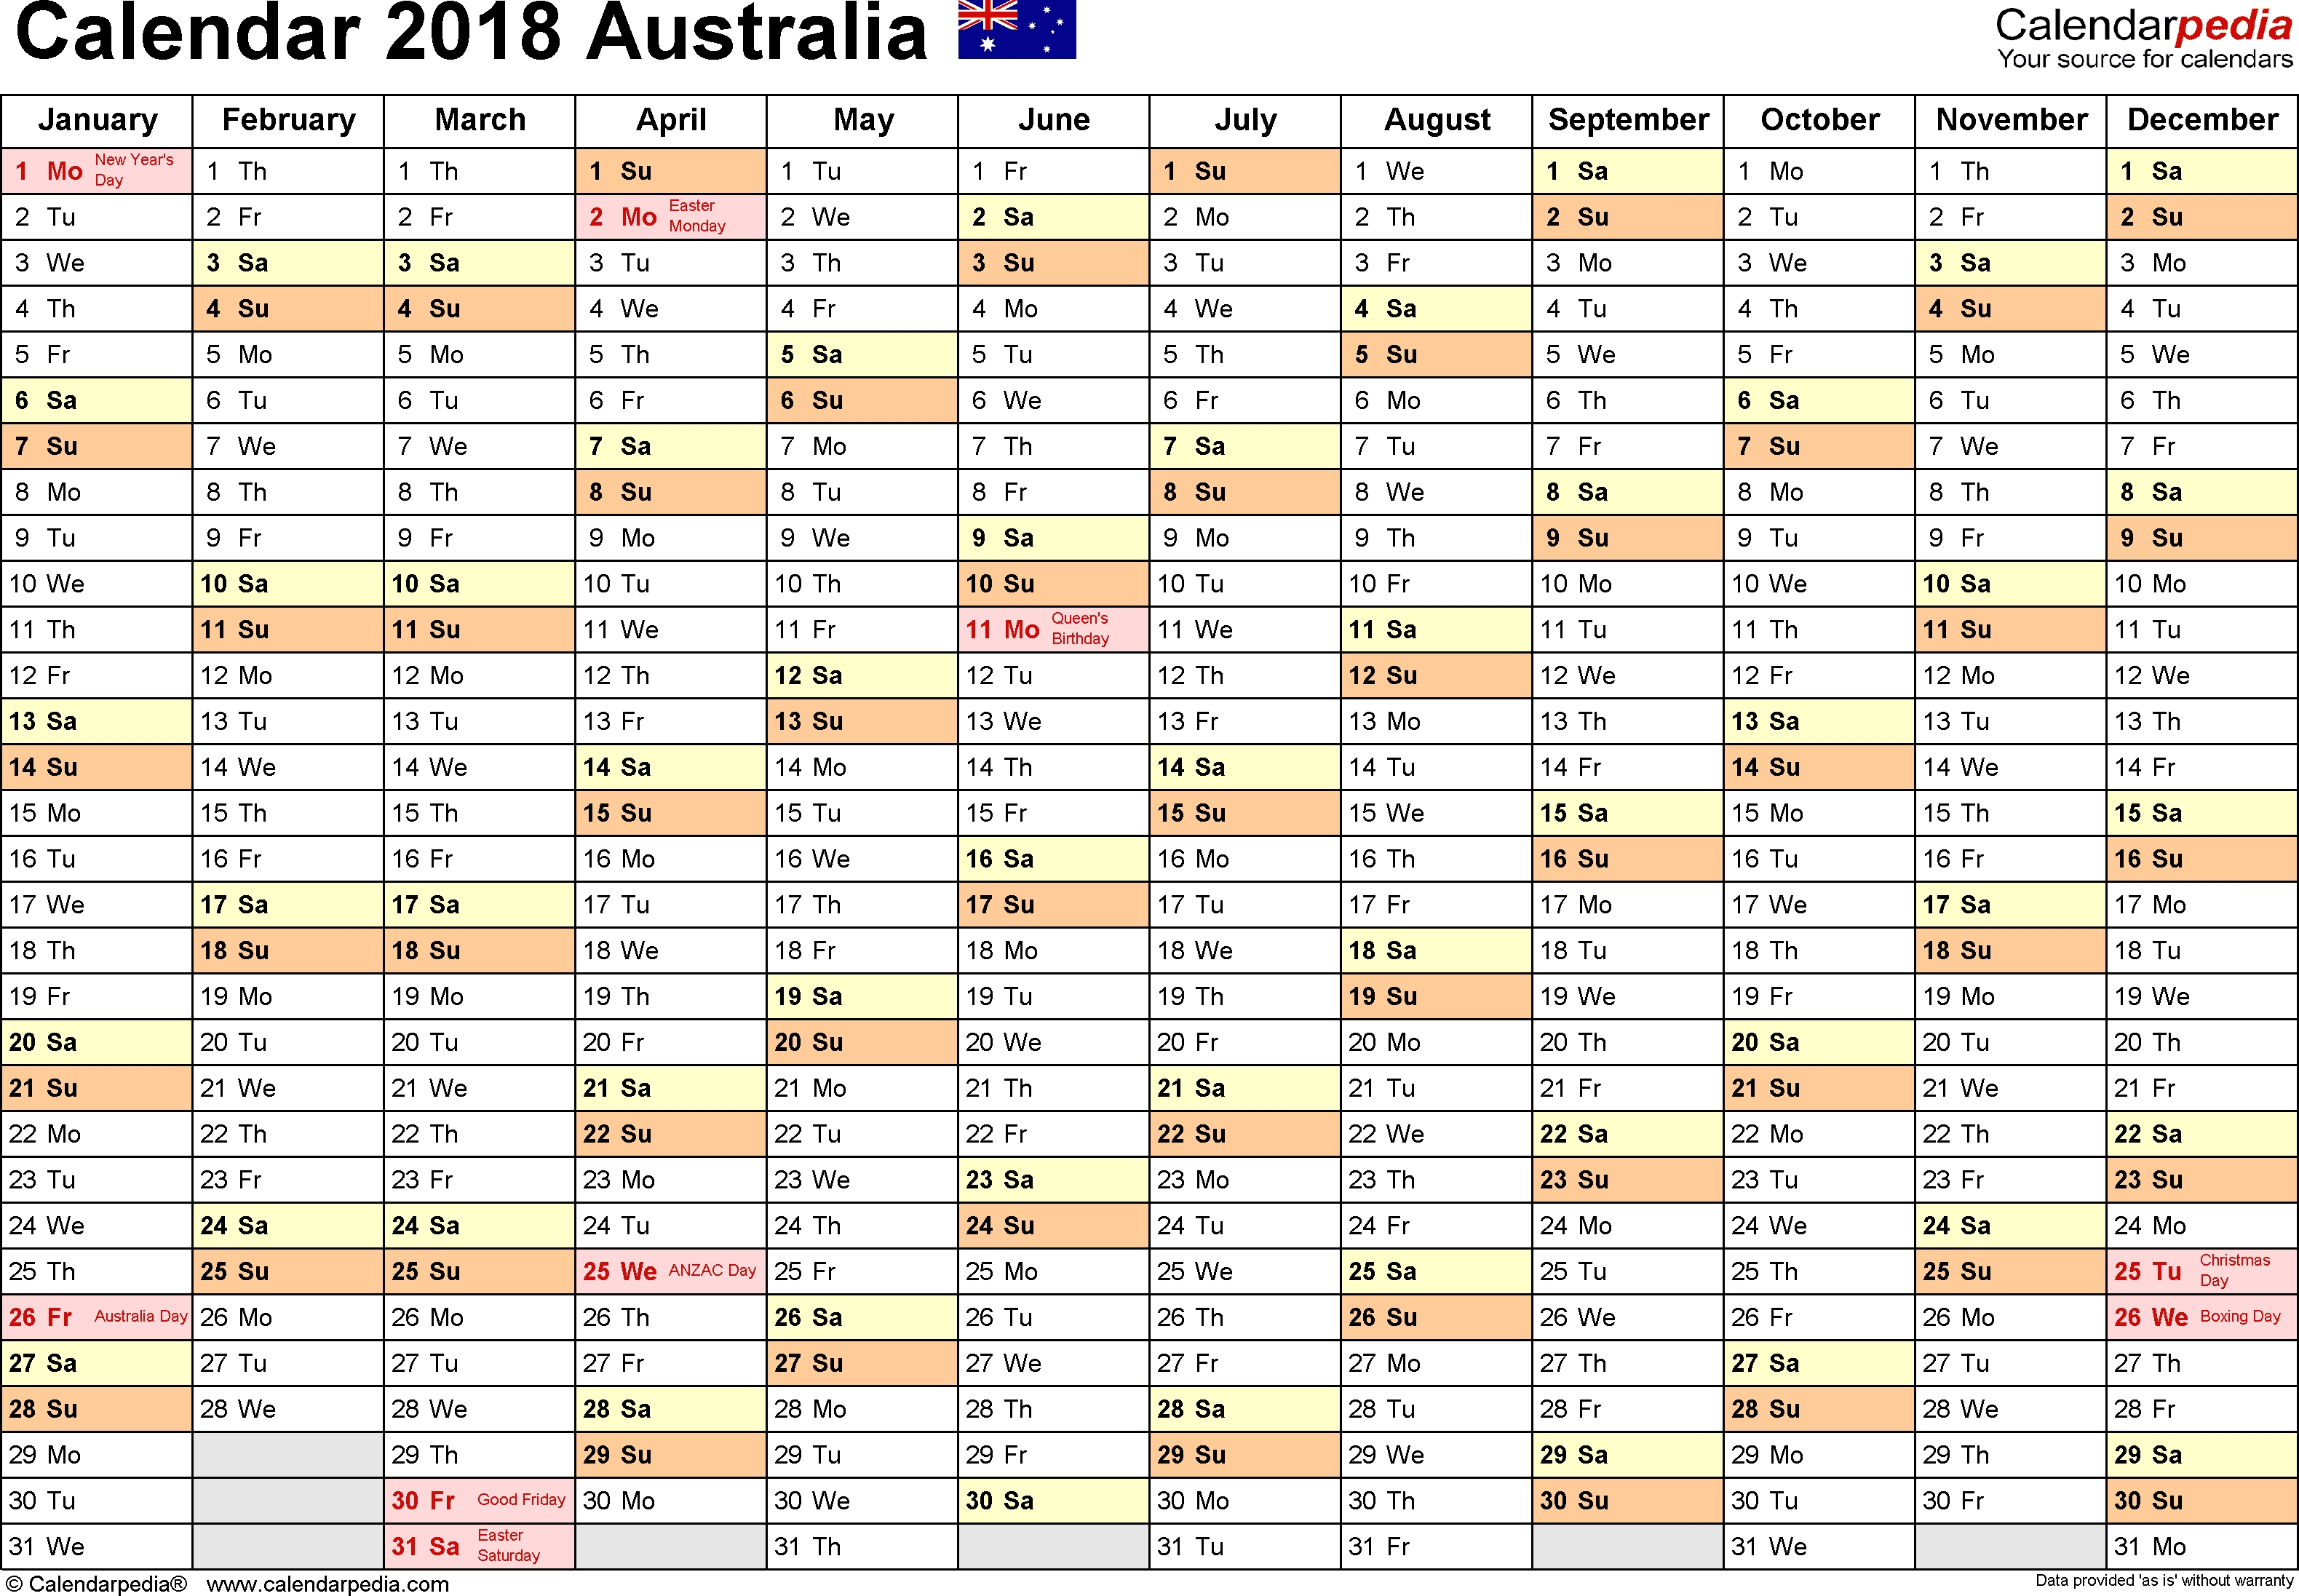 017 Calendar Australia Plans Financial Planning Dreaded  Financial Year Calendar Australia